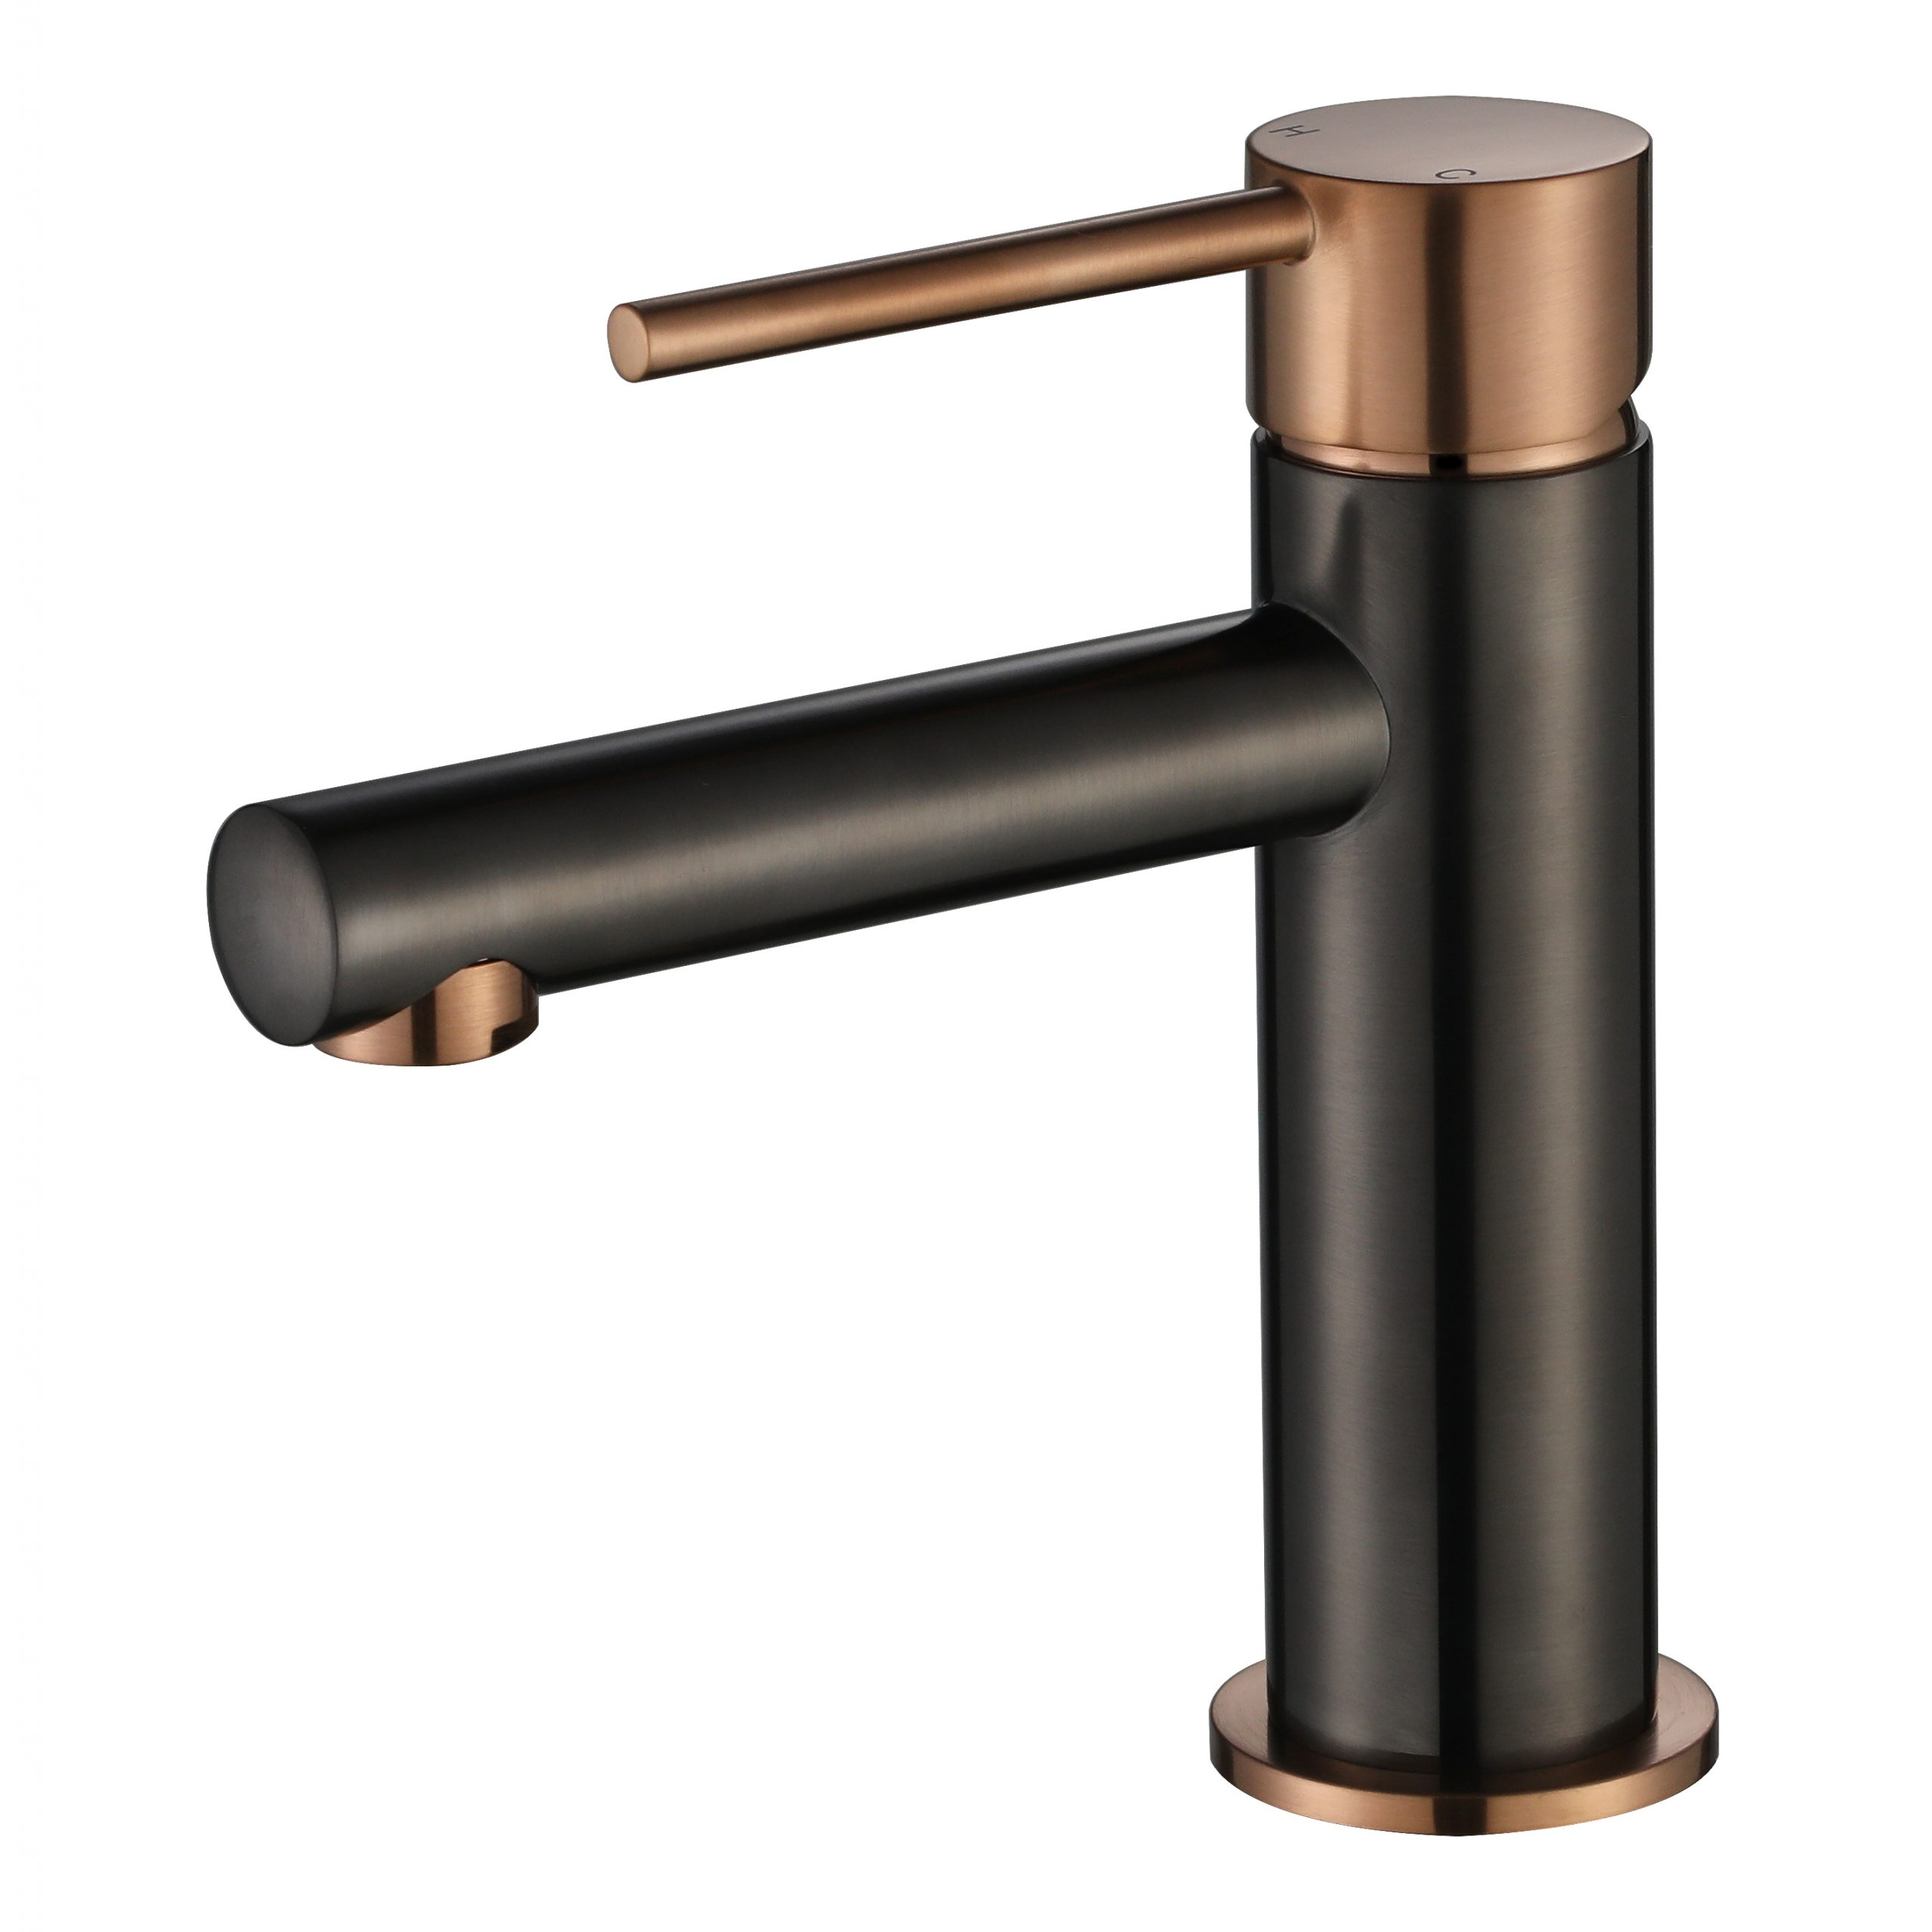 Star Mini Basin Mixer-PVD Champagne & Gun Metal